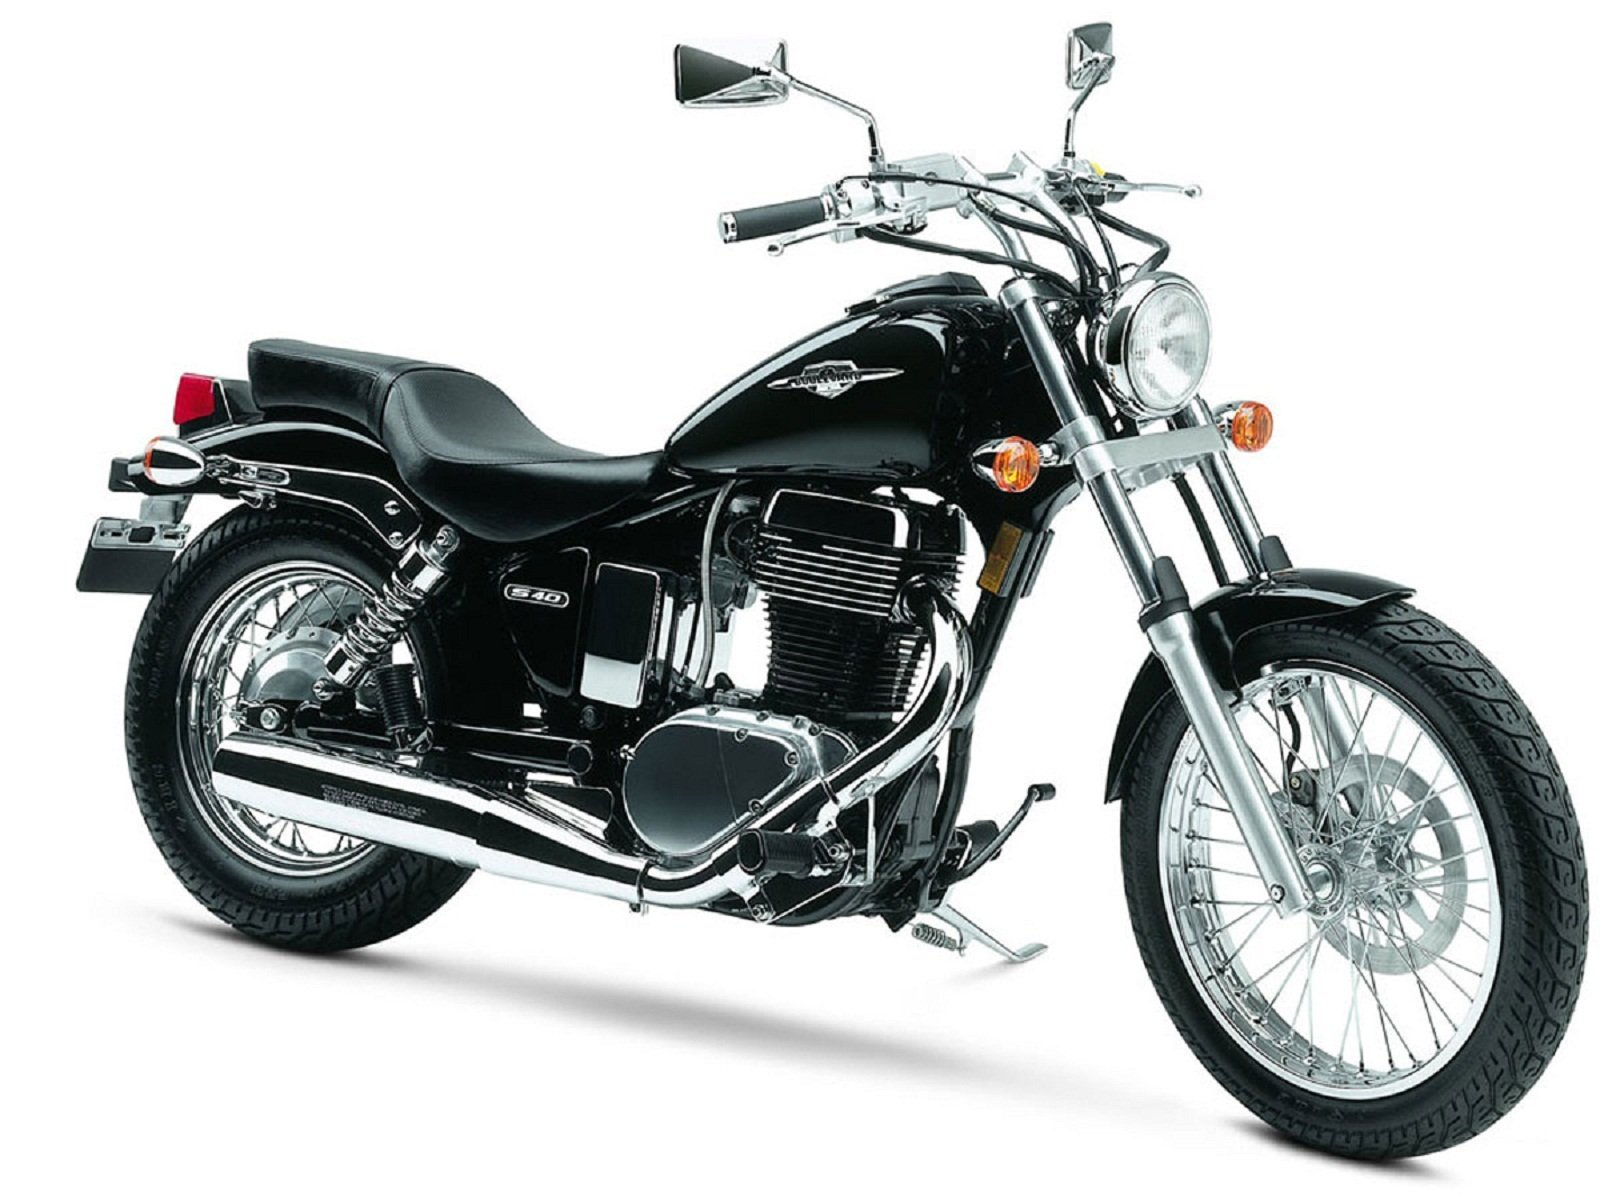 Suzuki Savage Top Speed